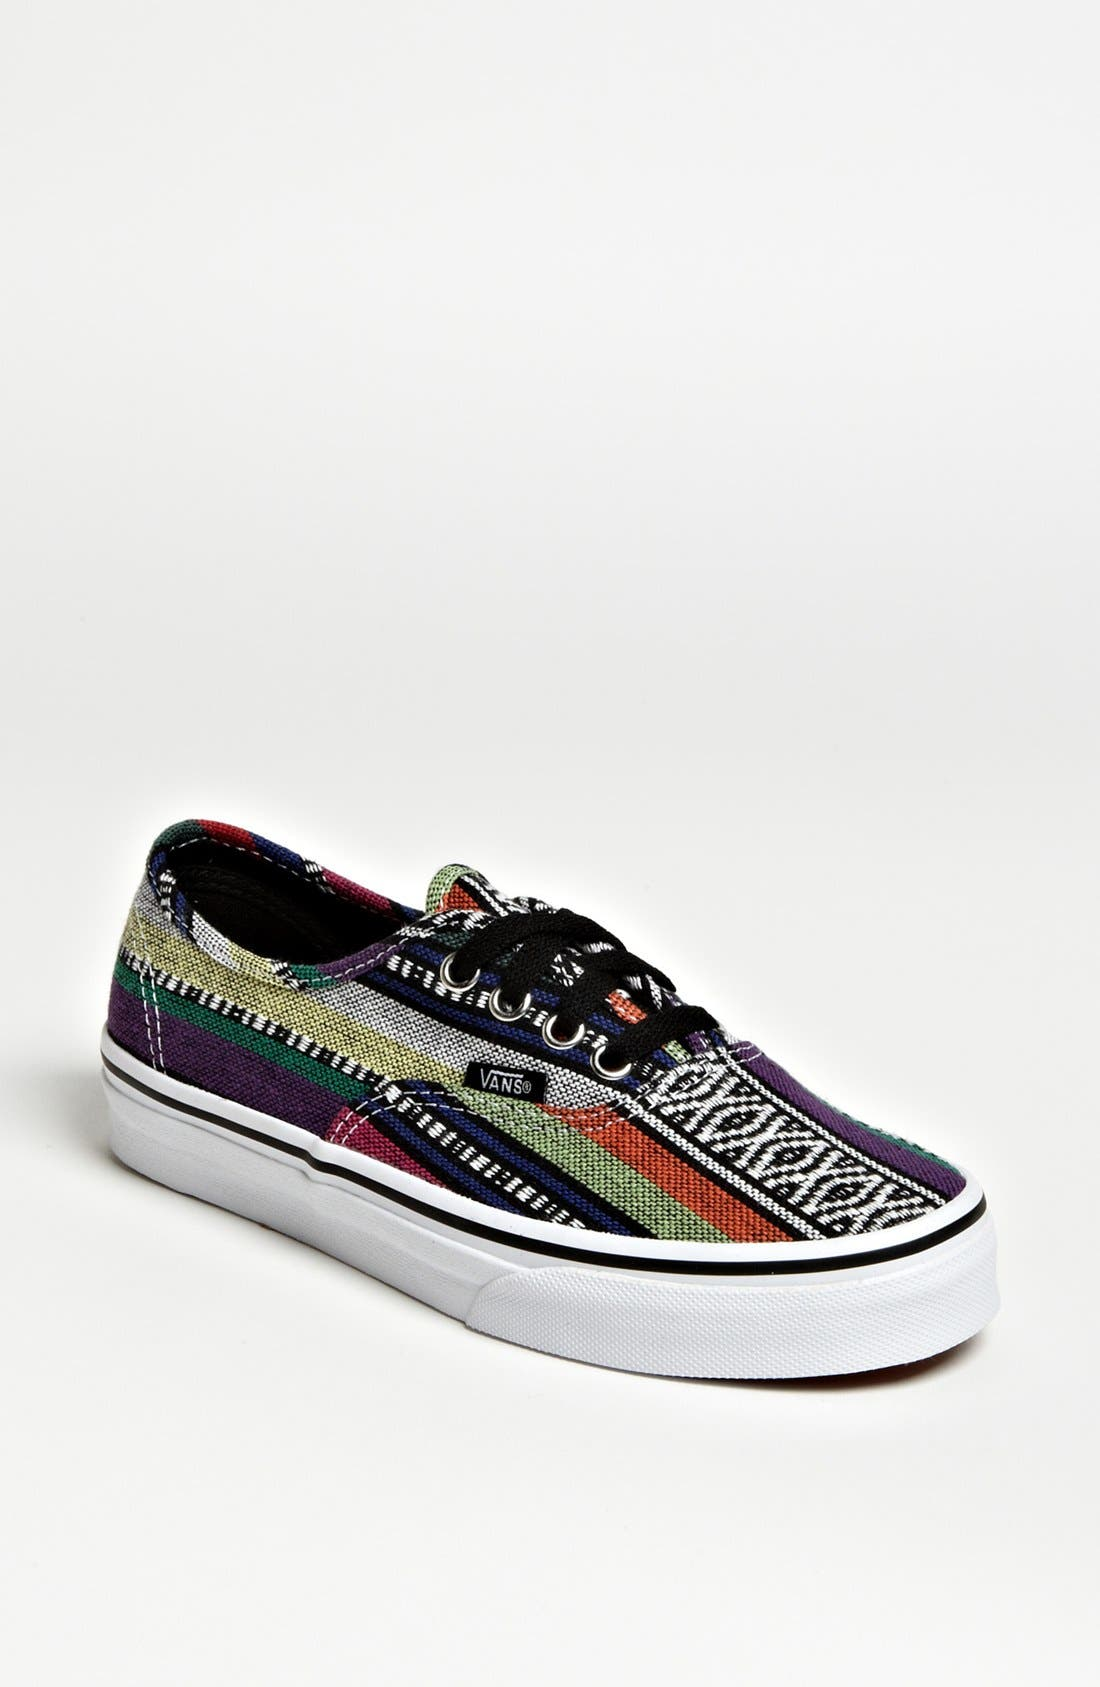 Alternate Image 1 Selected - Vans 'Authentic - Guata' Sneaker (Women)